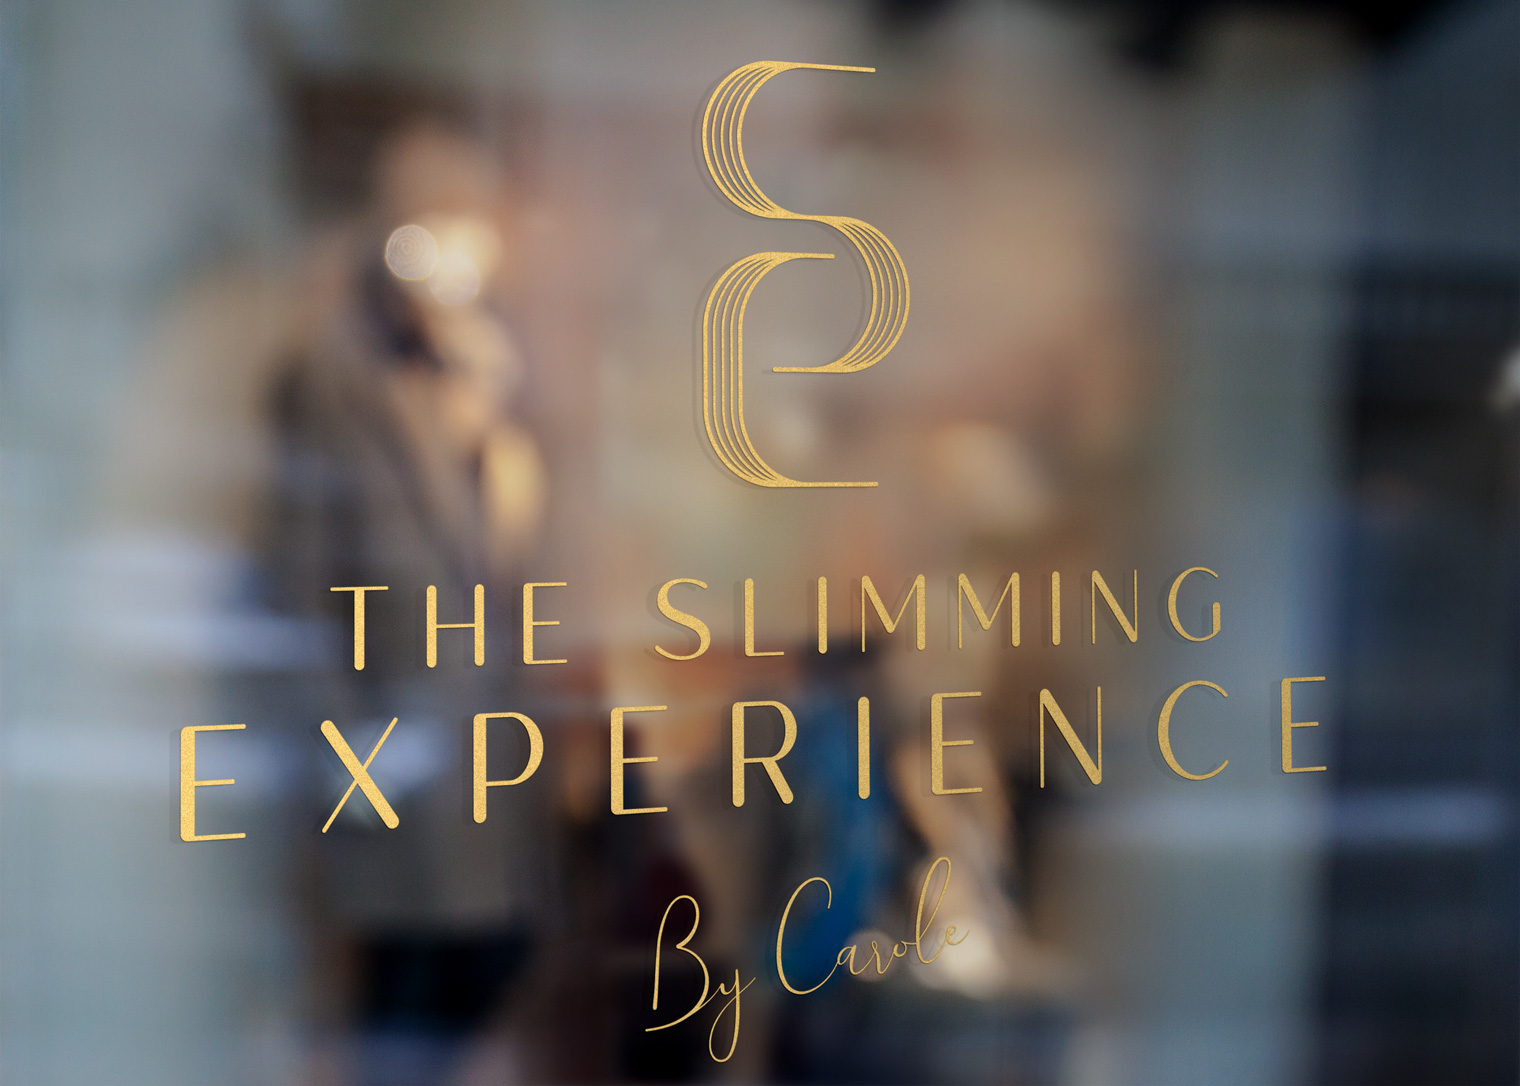 logo sur vitrine The slimming experience